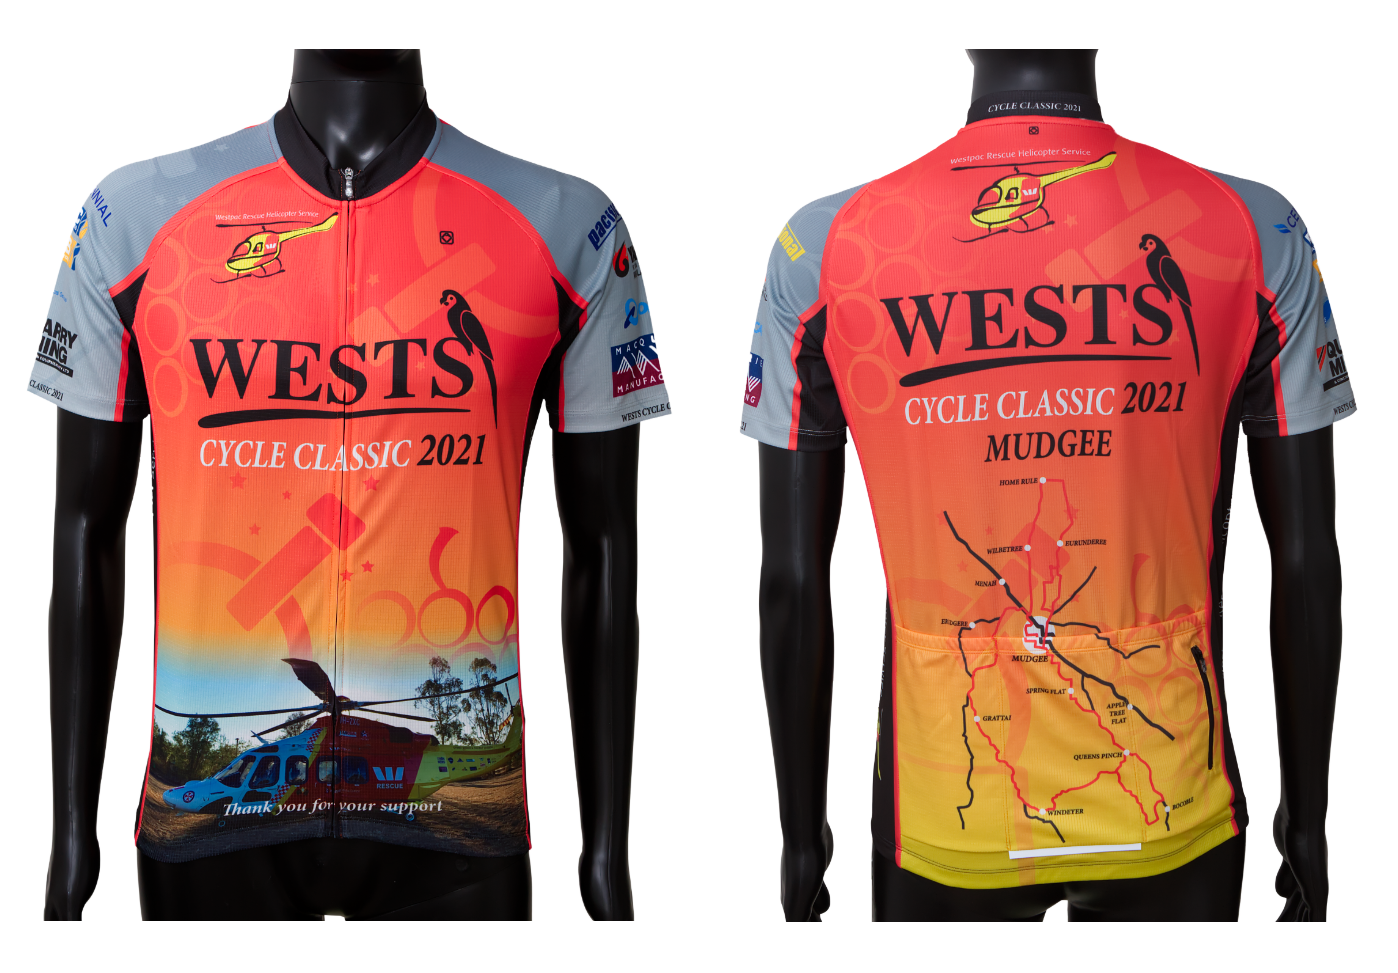 Westpac Cycle Classic jersey